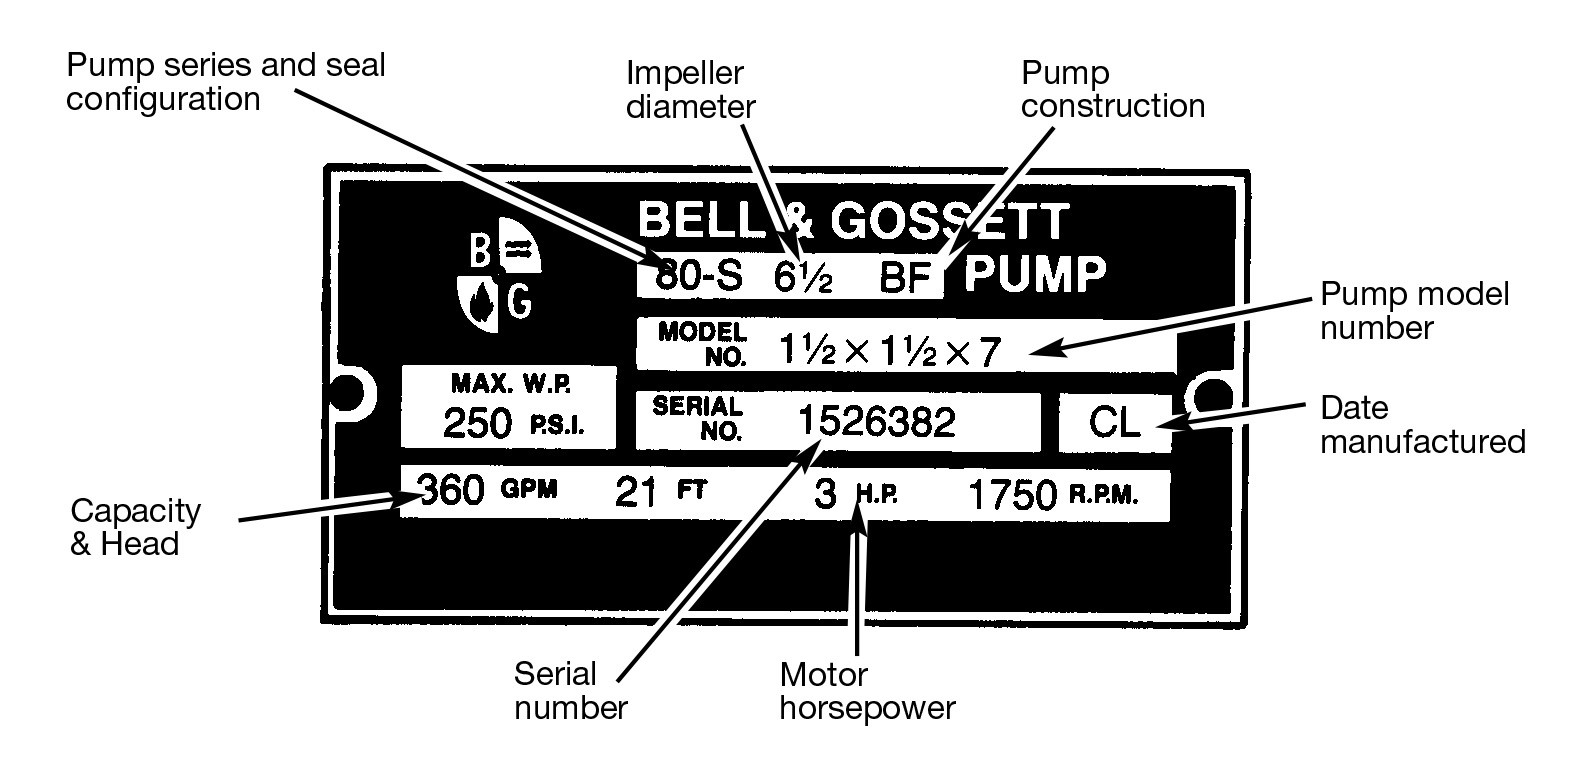 Bell And Gossett Series 80 In Line Centrifugal Pumps